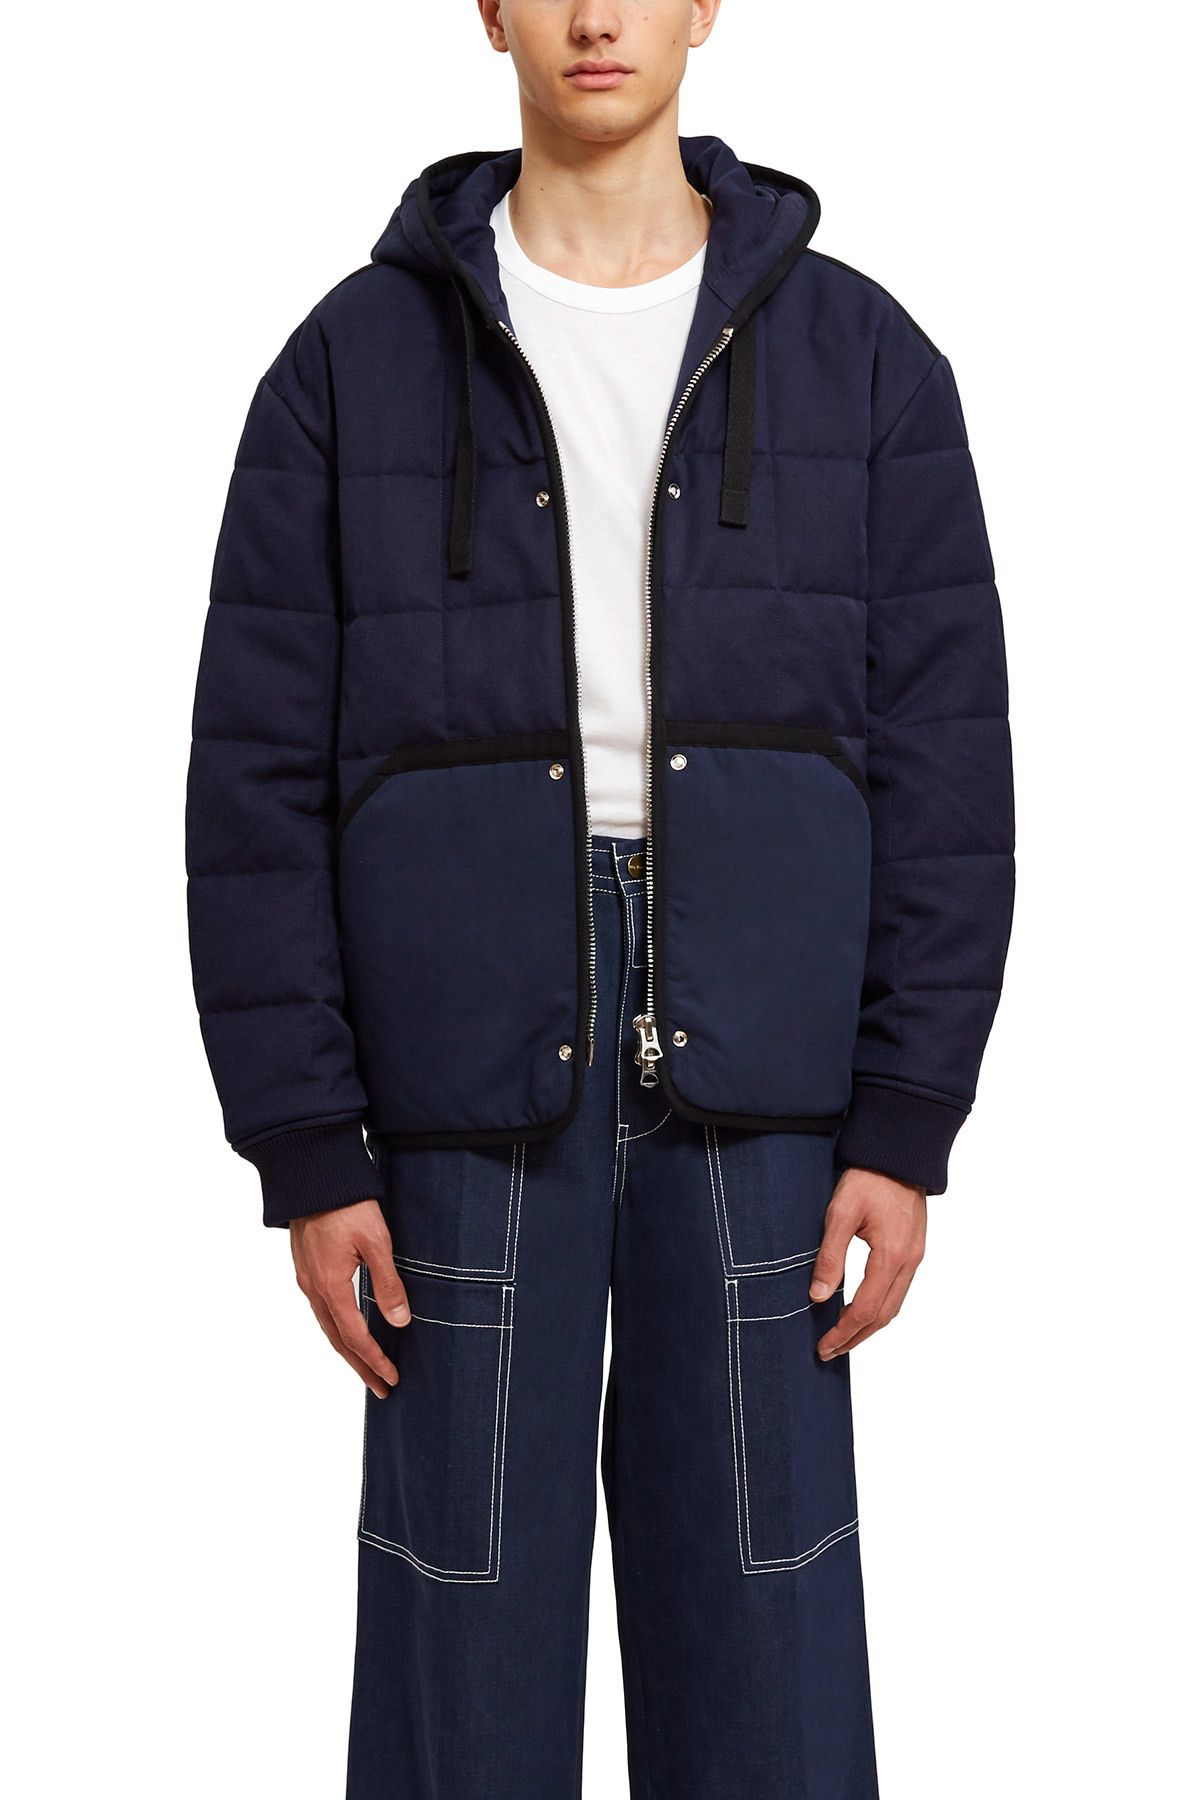 Acne Studios Quilted Puffer Jacket The Dark Blue Quilted Jacket Is Crafted With A Curved Hem And Herringbone Tape Quilted Puffer Jacket Puffer Jackets Jackets